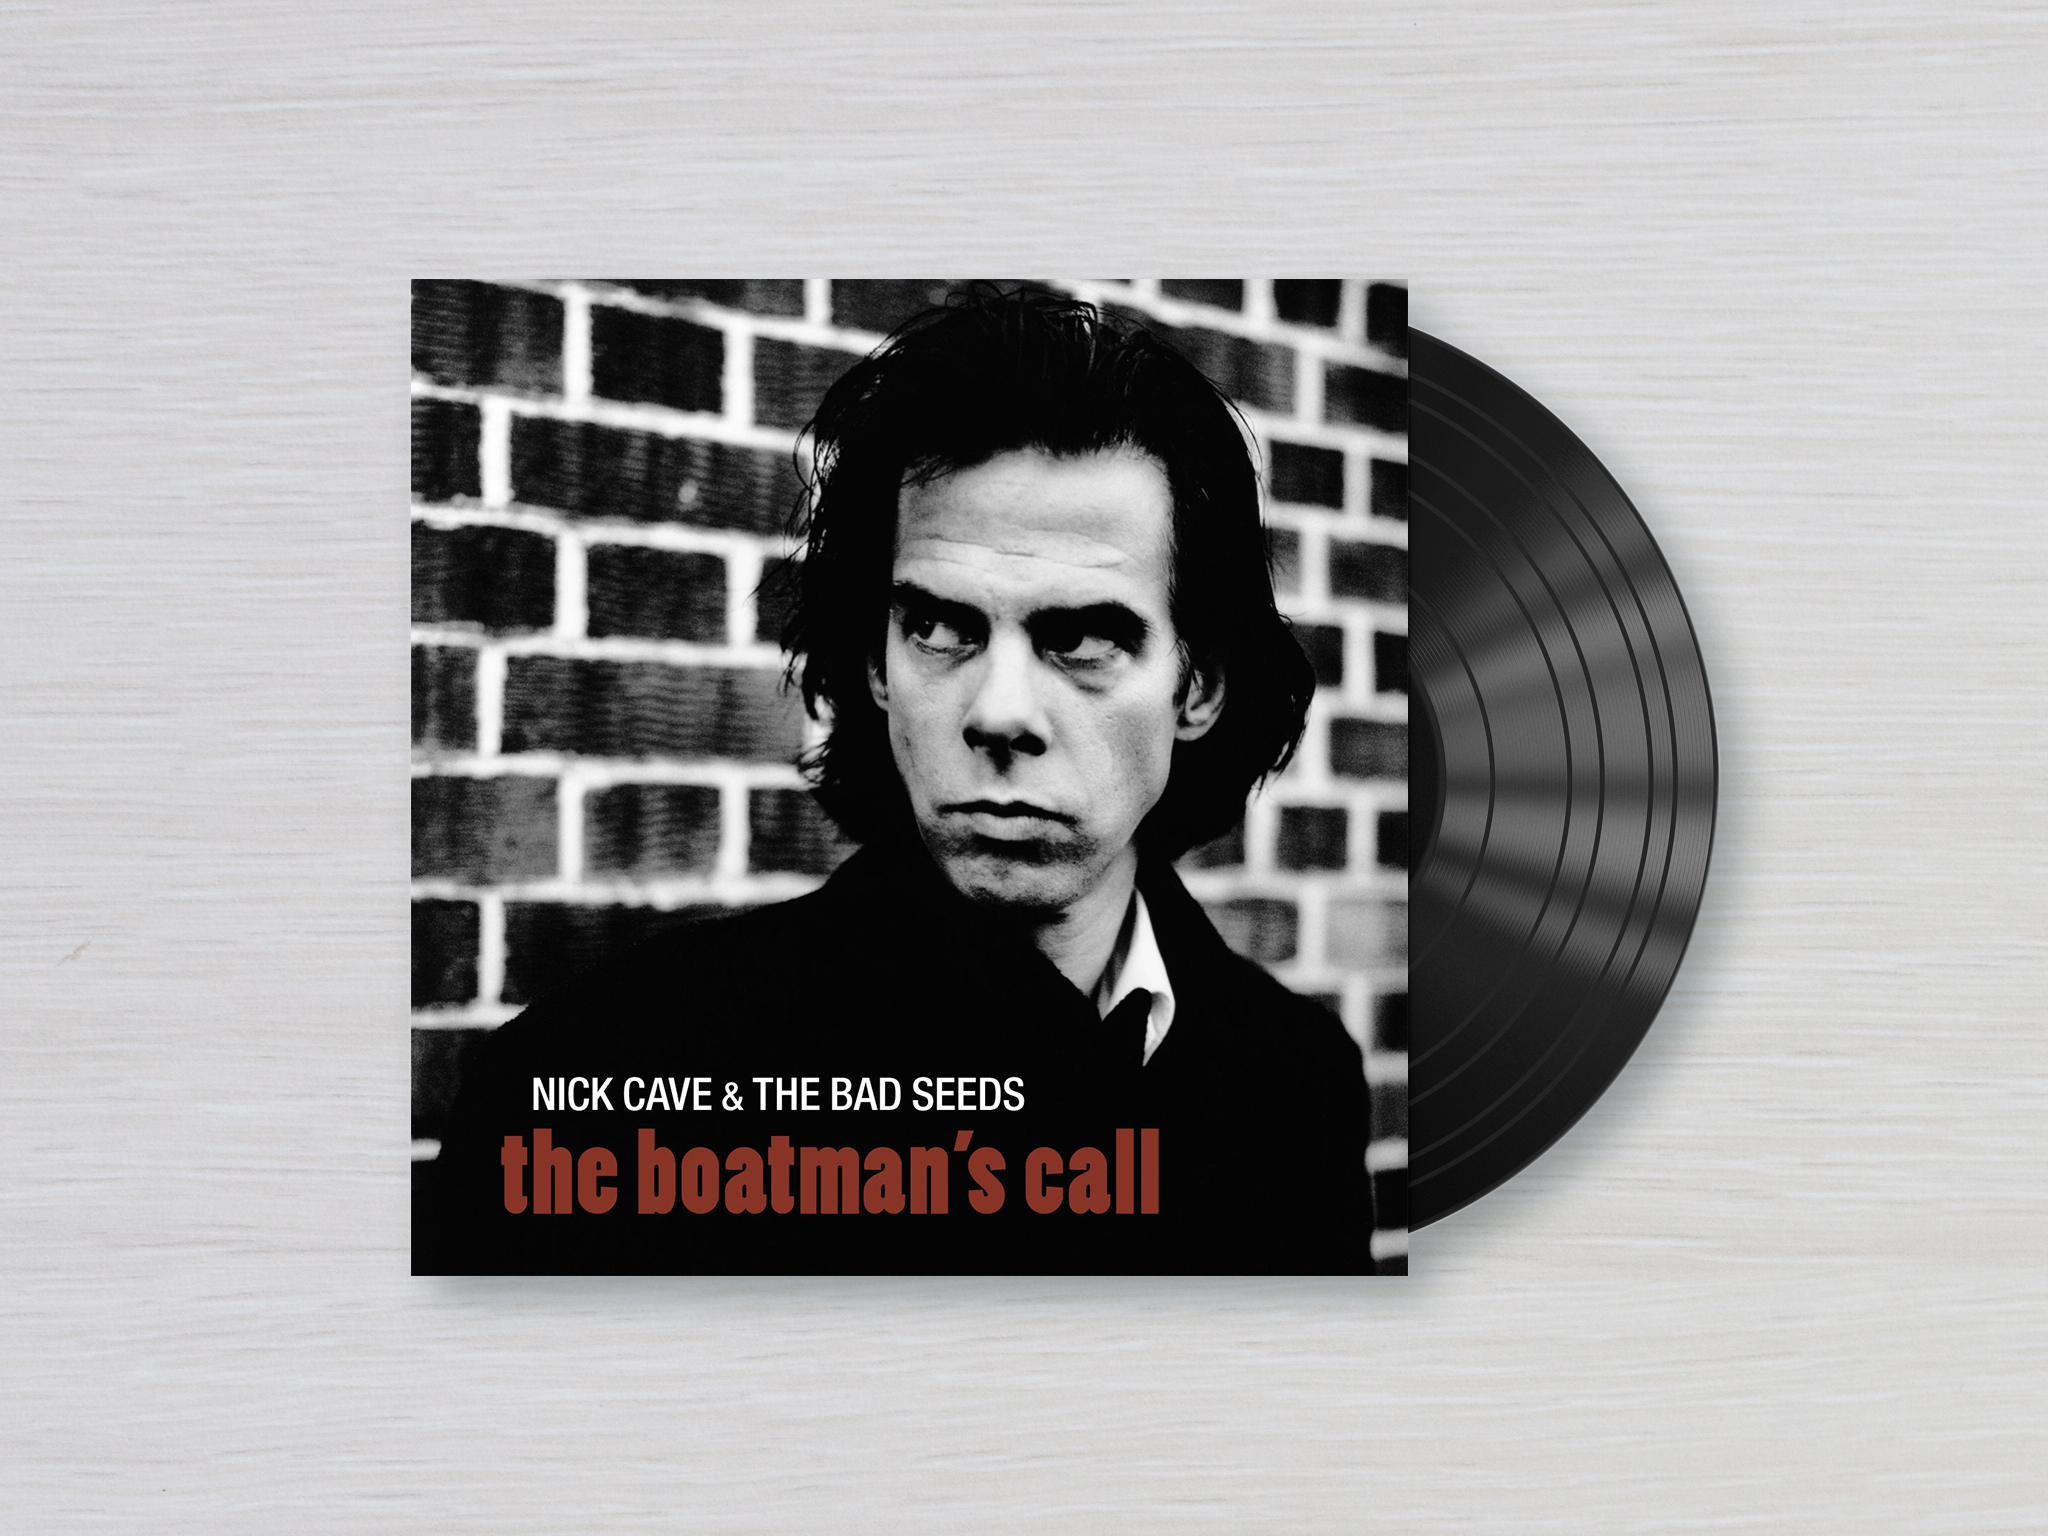 The Boatman's Call – Nick Cave and the Bad Seeds